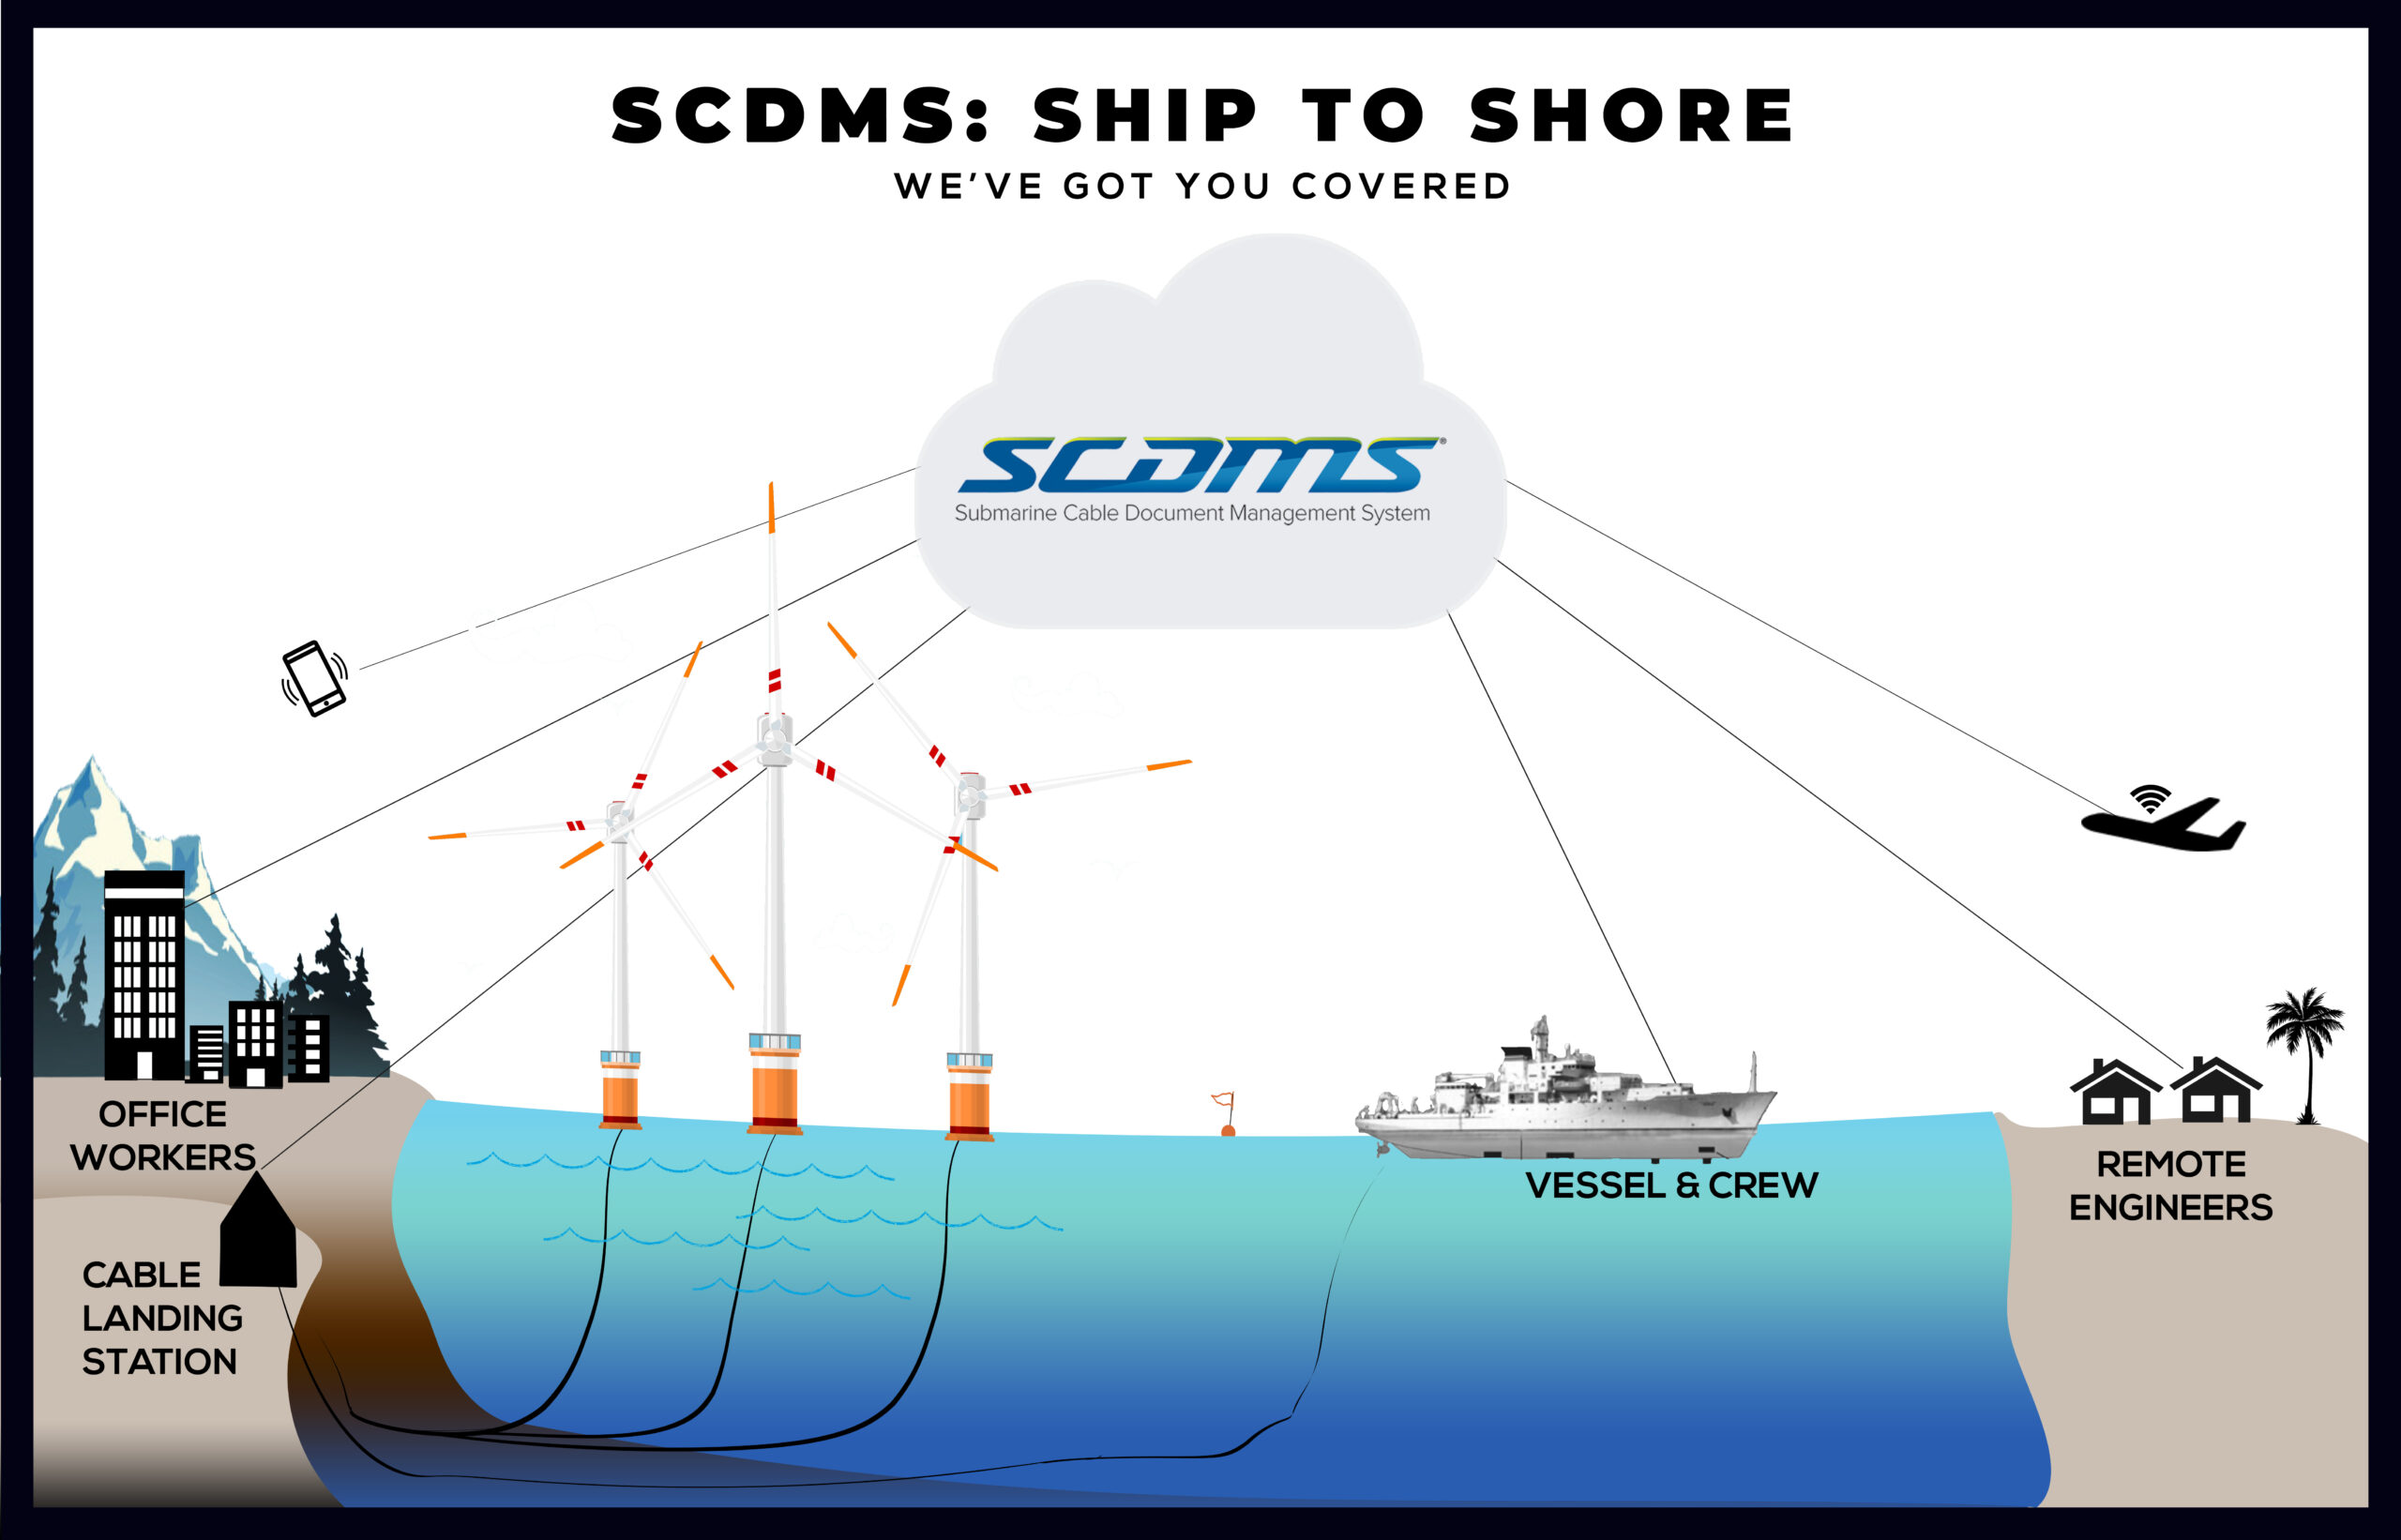 SHIP TO SHORE Energy and Telecom SCDMS